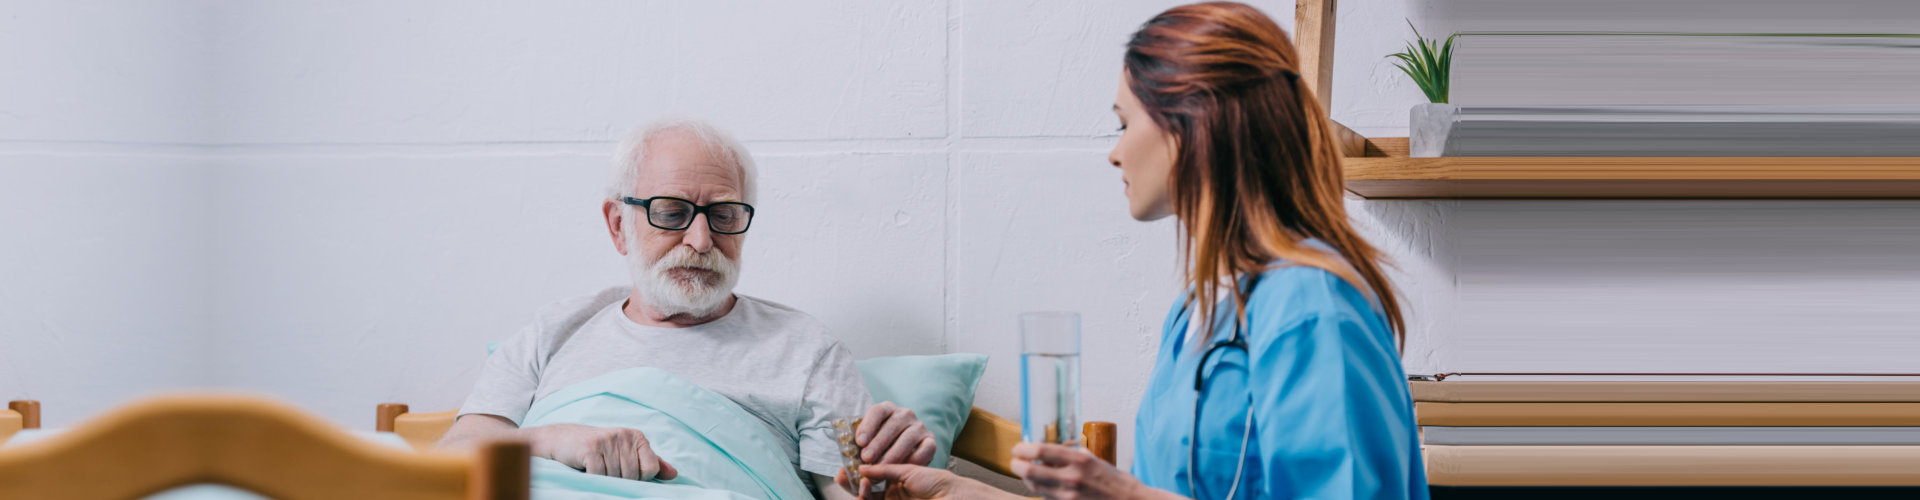 female caregiver giving medicine to her old man patient